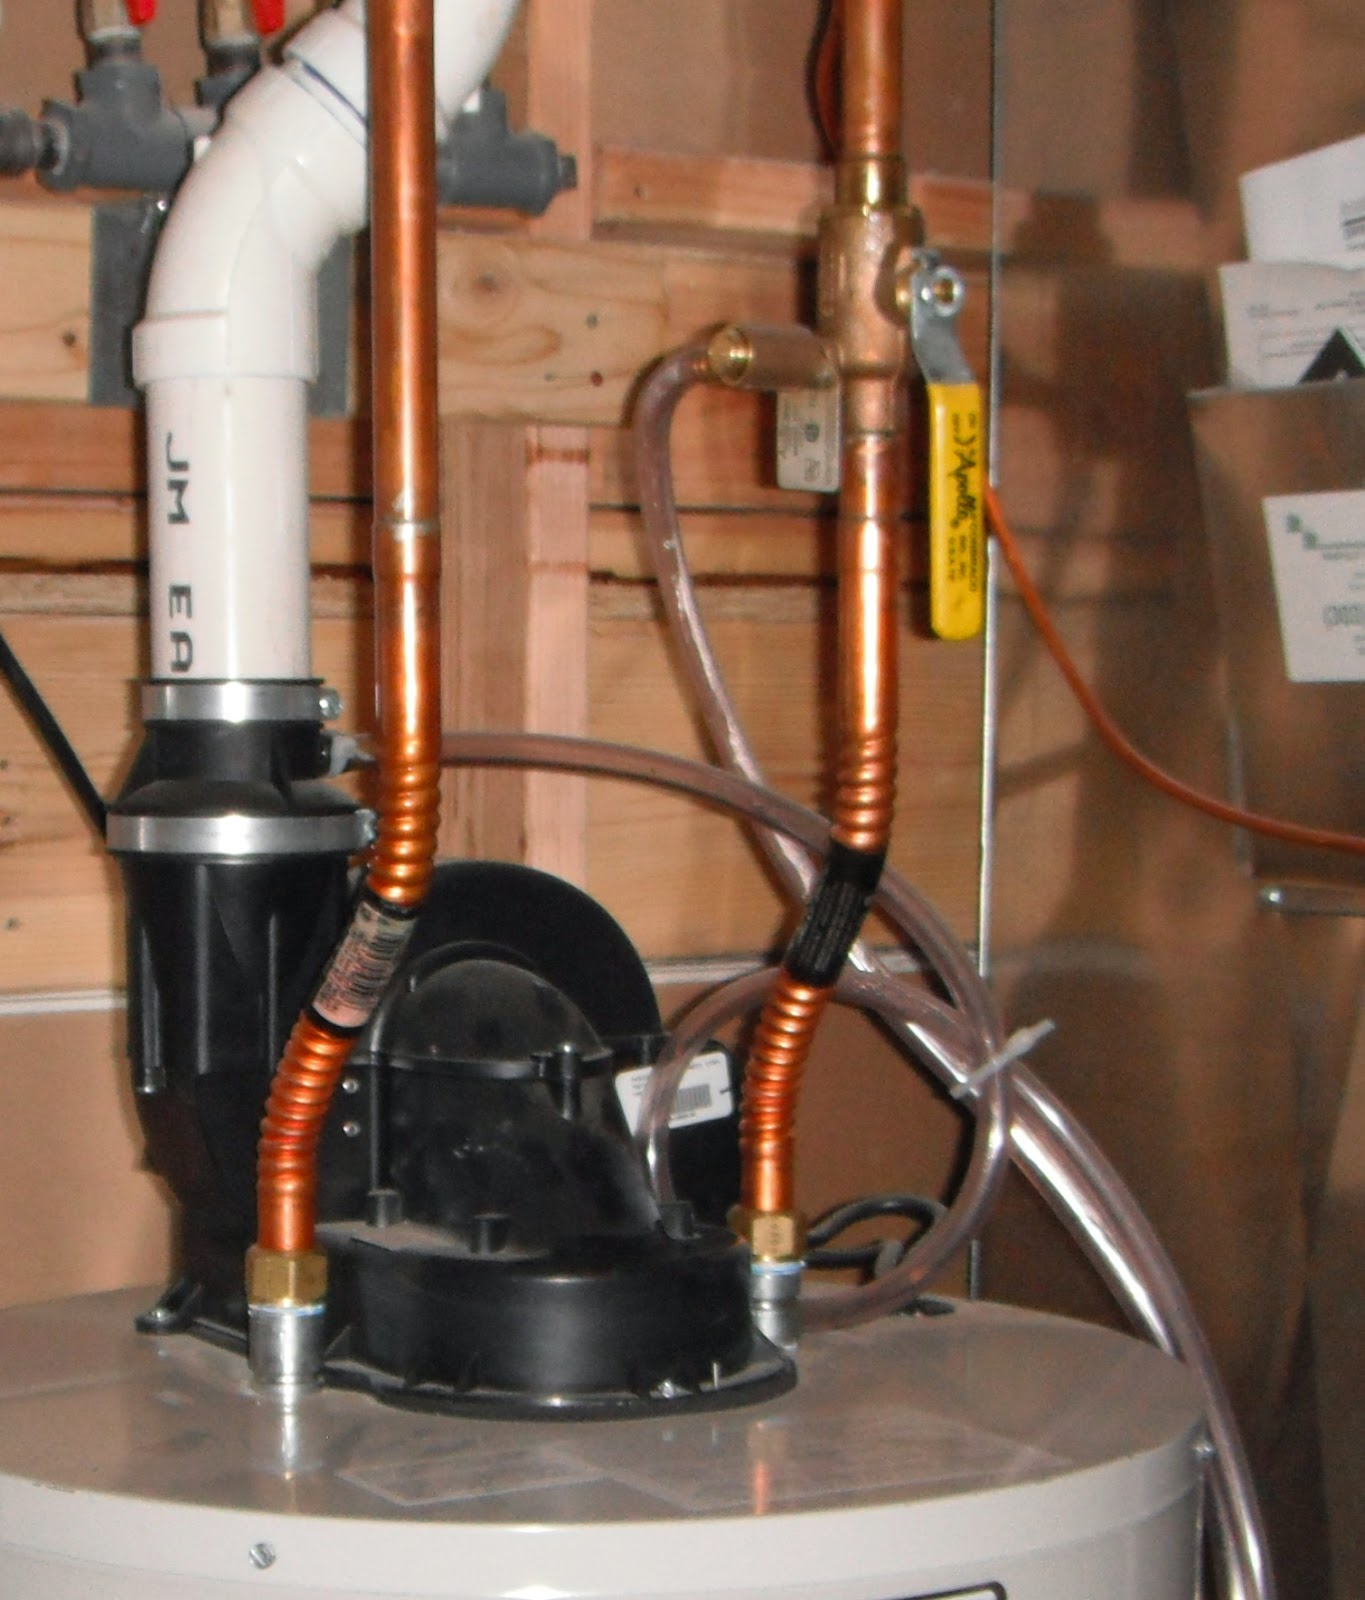 Hot water heater venting problems - Mon Water Heater Problems And What To Check